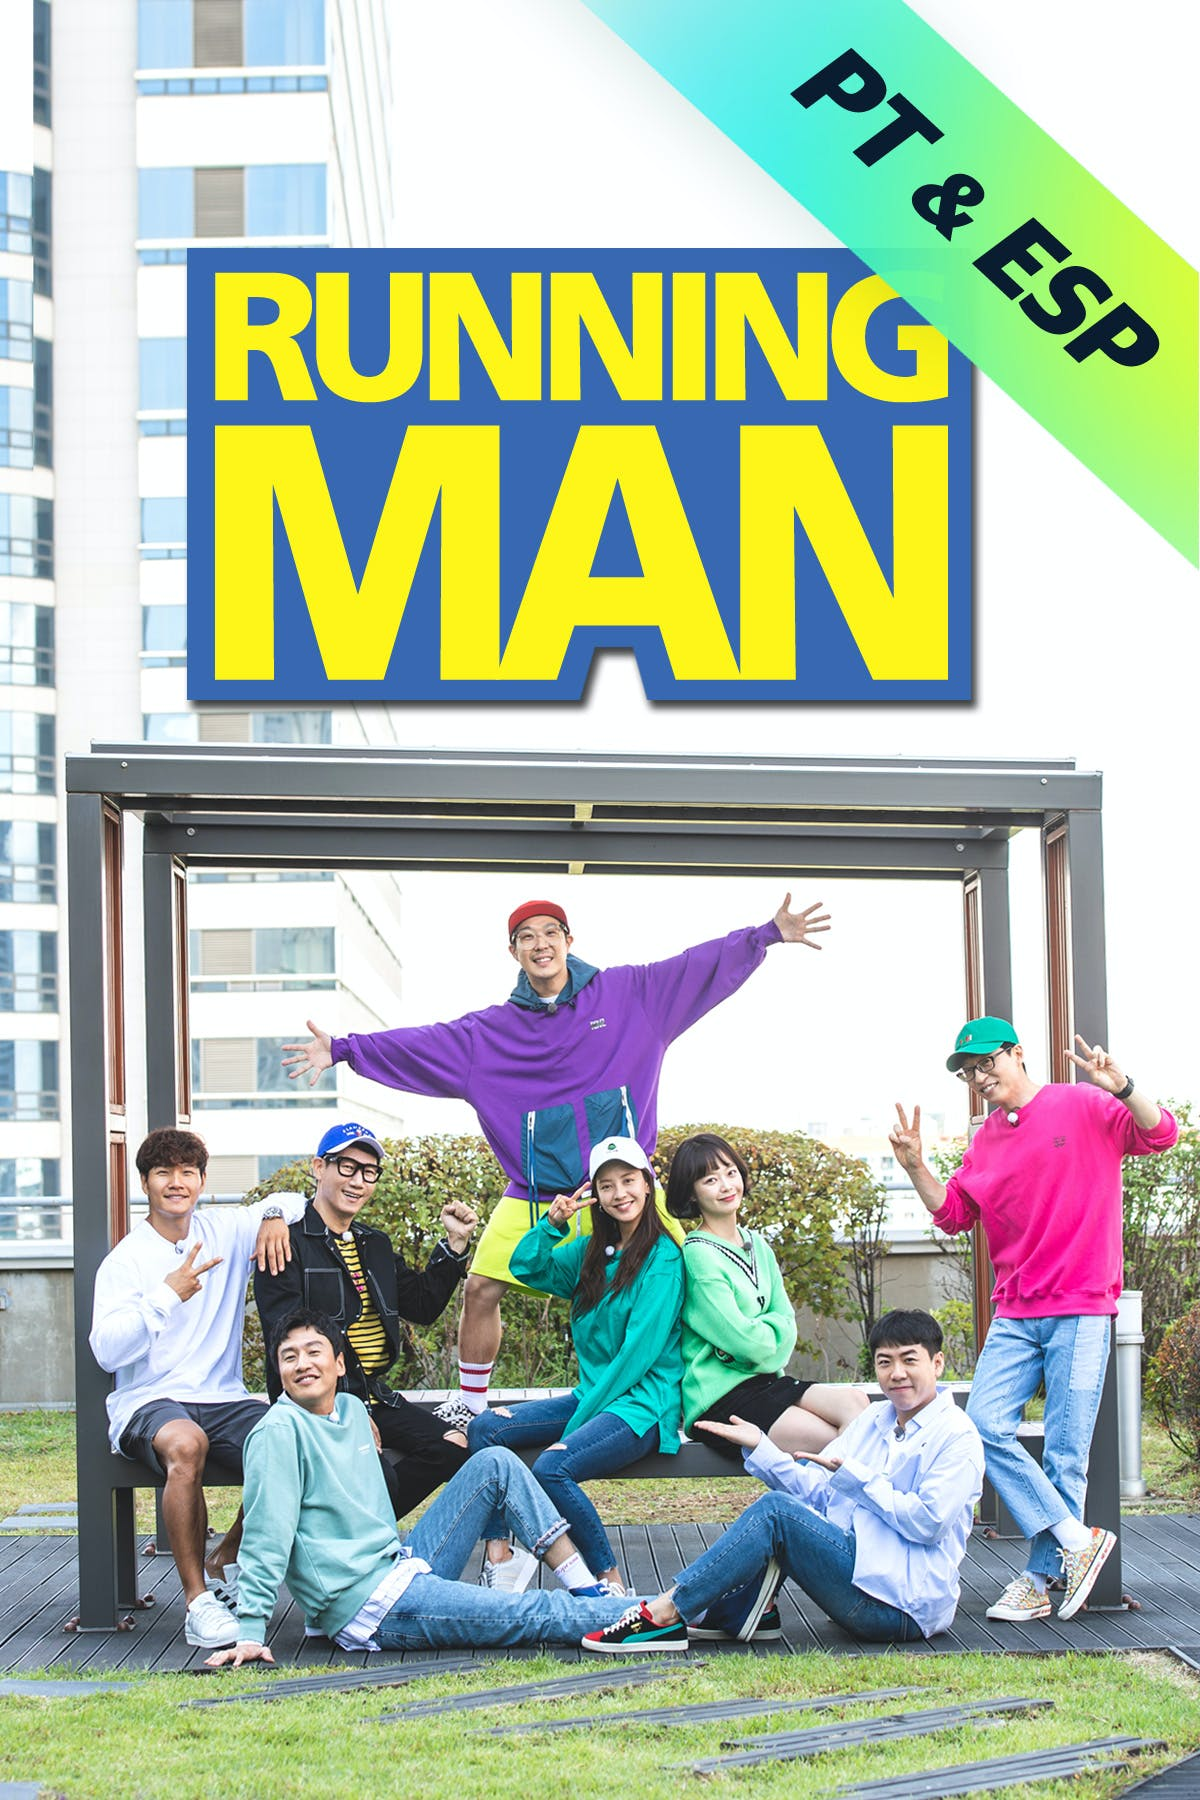 Download Running Man Ep 398 : download, running, KOCOWA, Premium, Streaming, Service, Which, Delivers, K-Drama, Series,, Variety, Shows, K-POP